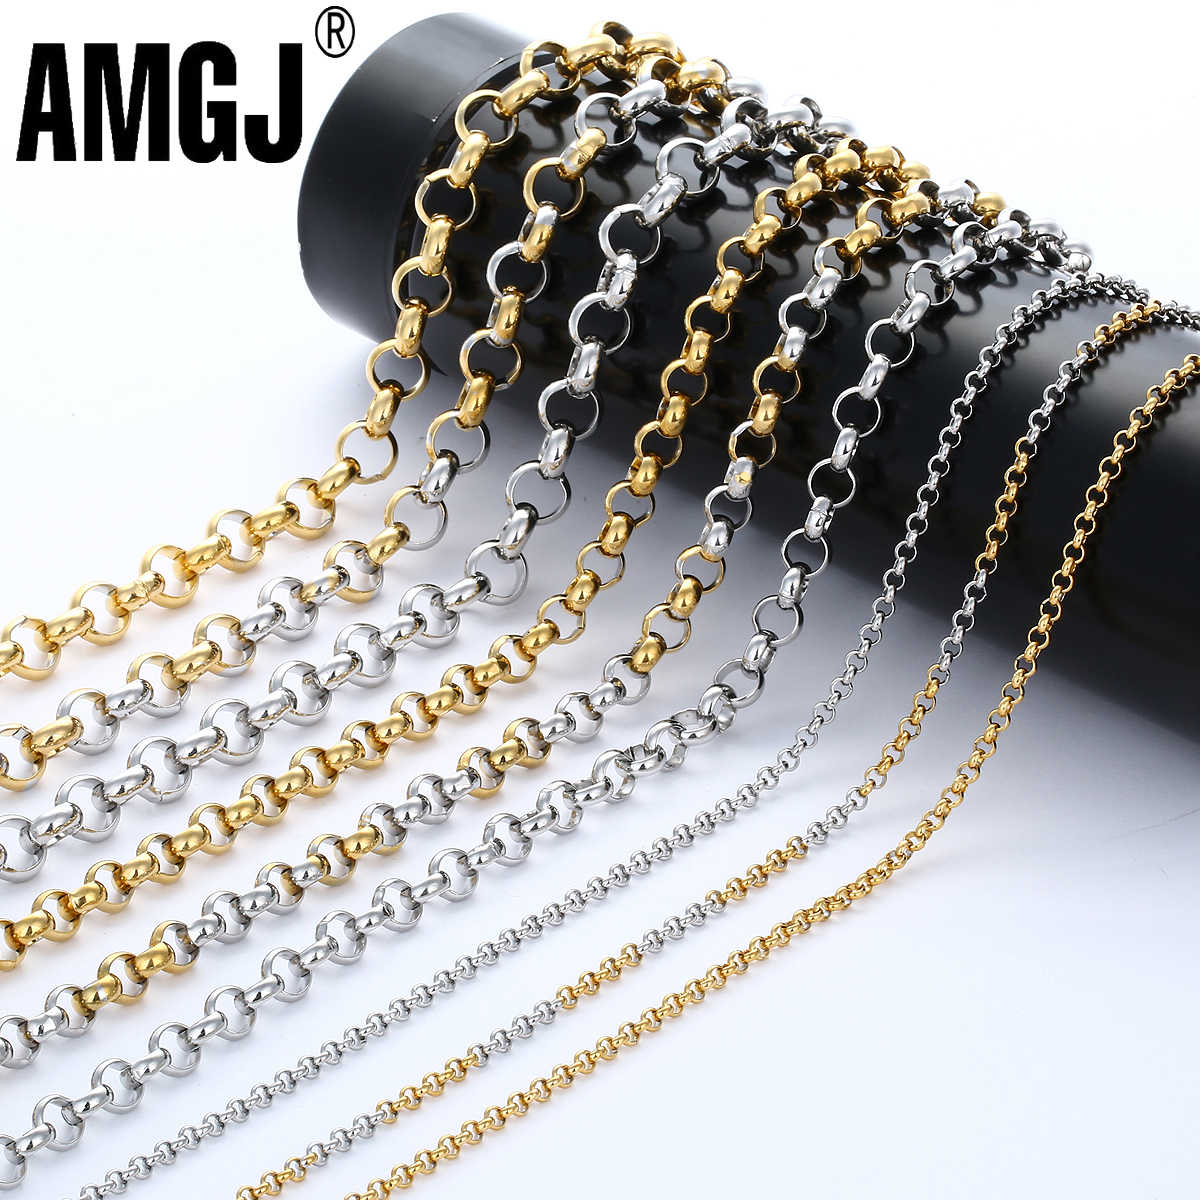 AMGJ Wholesale Mens Necklace Chain Stainless Steel Silver Tone Rolo Link Chains Necklaces for Men Jewelry Fashion 2/3/4/6/7mm